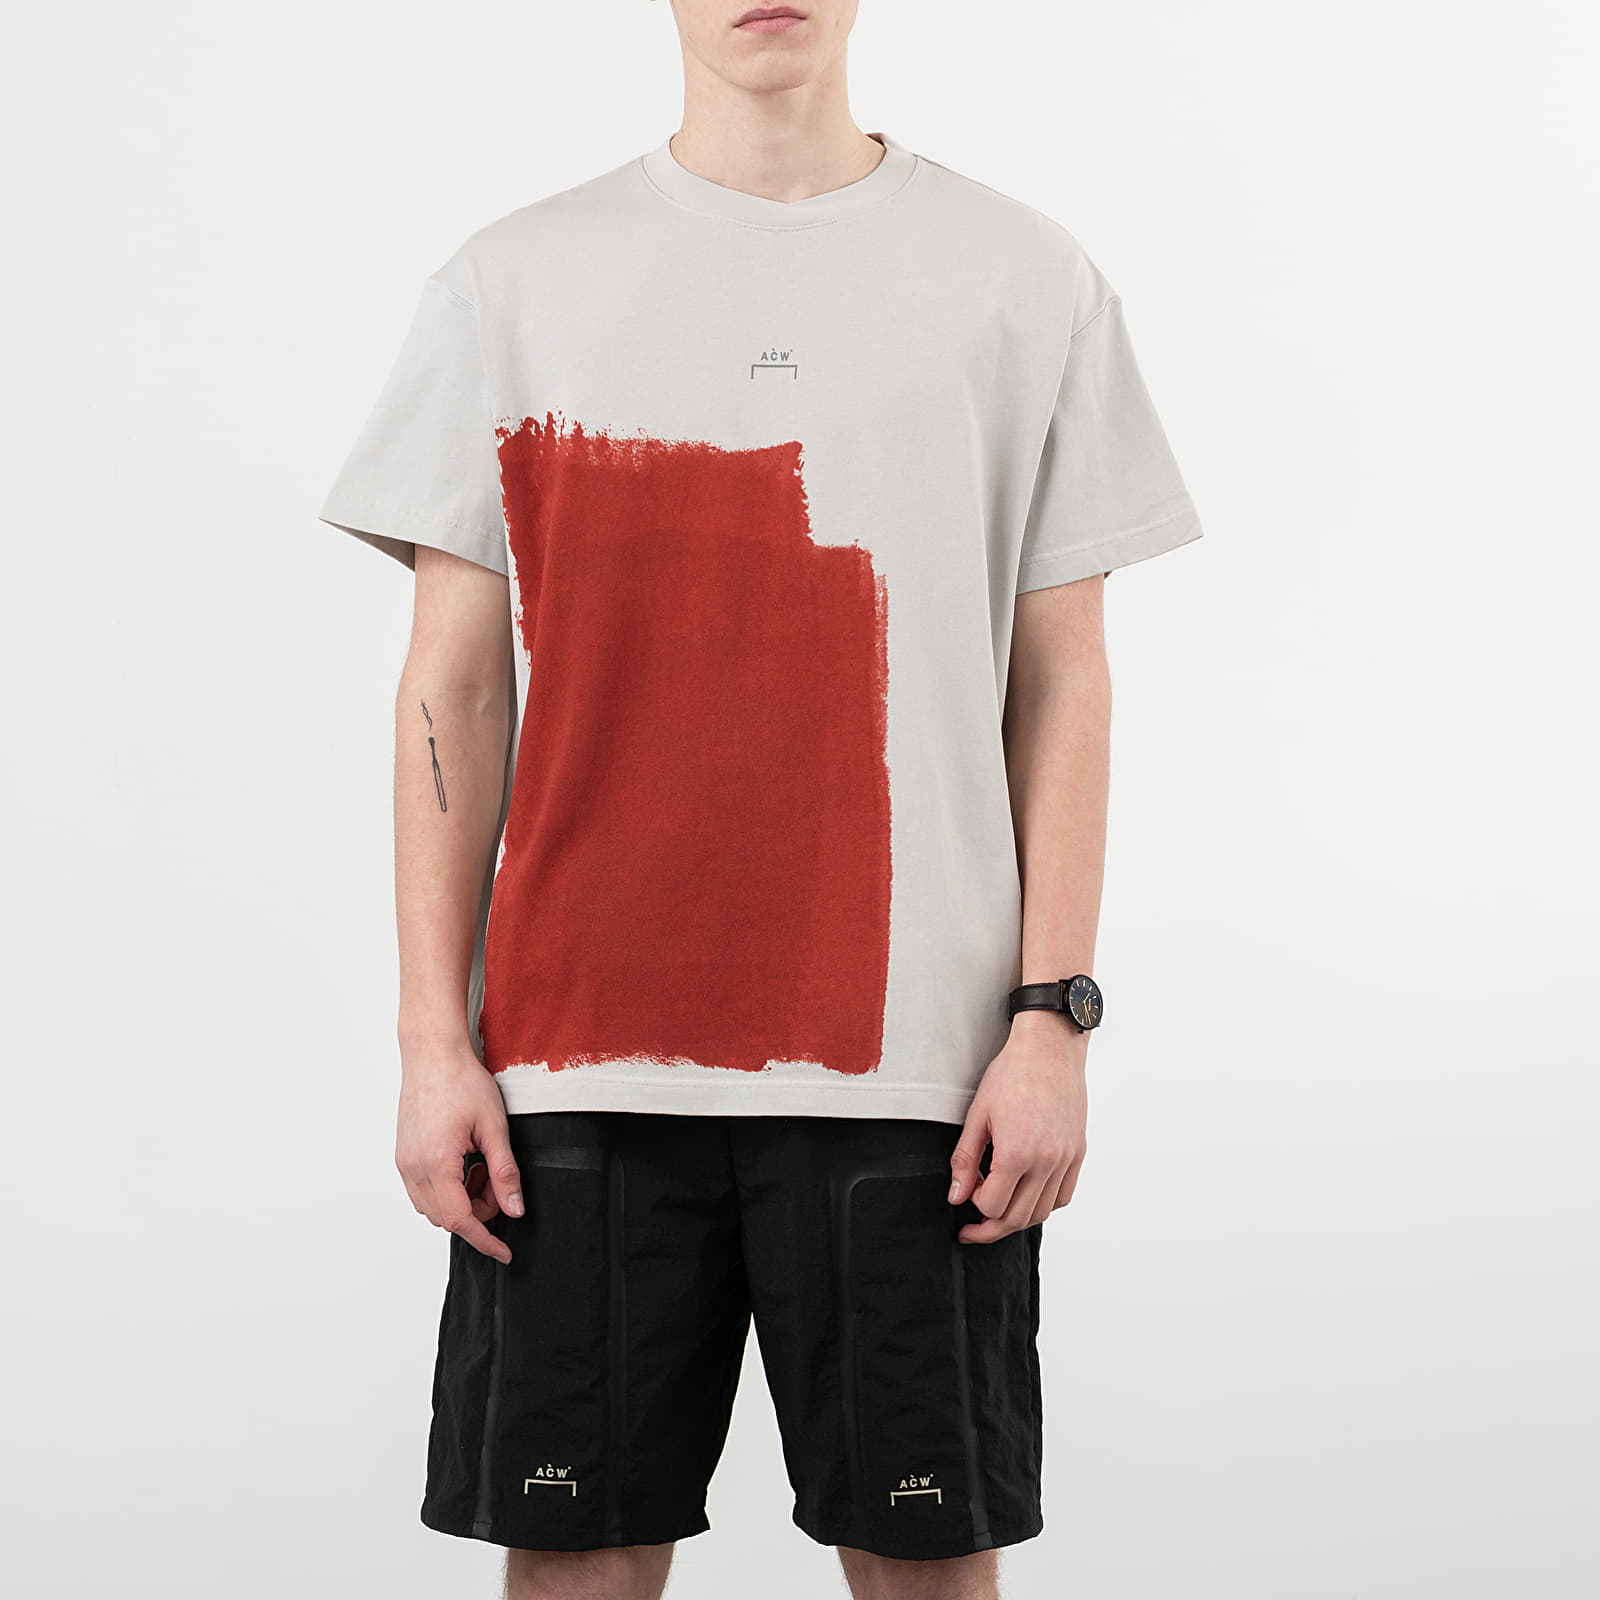 A-COLD-WALL* Painted Tee